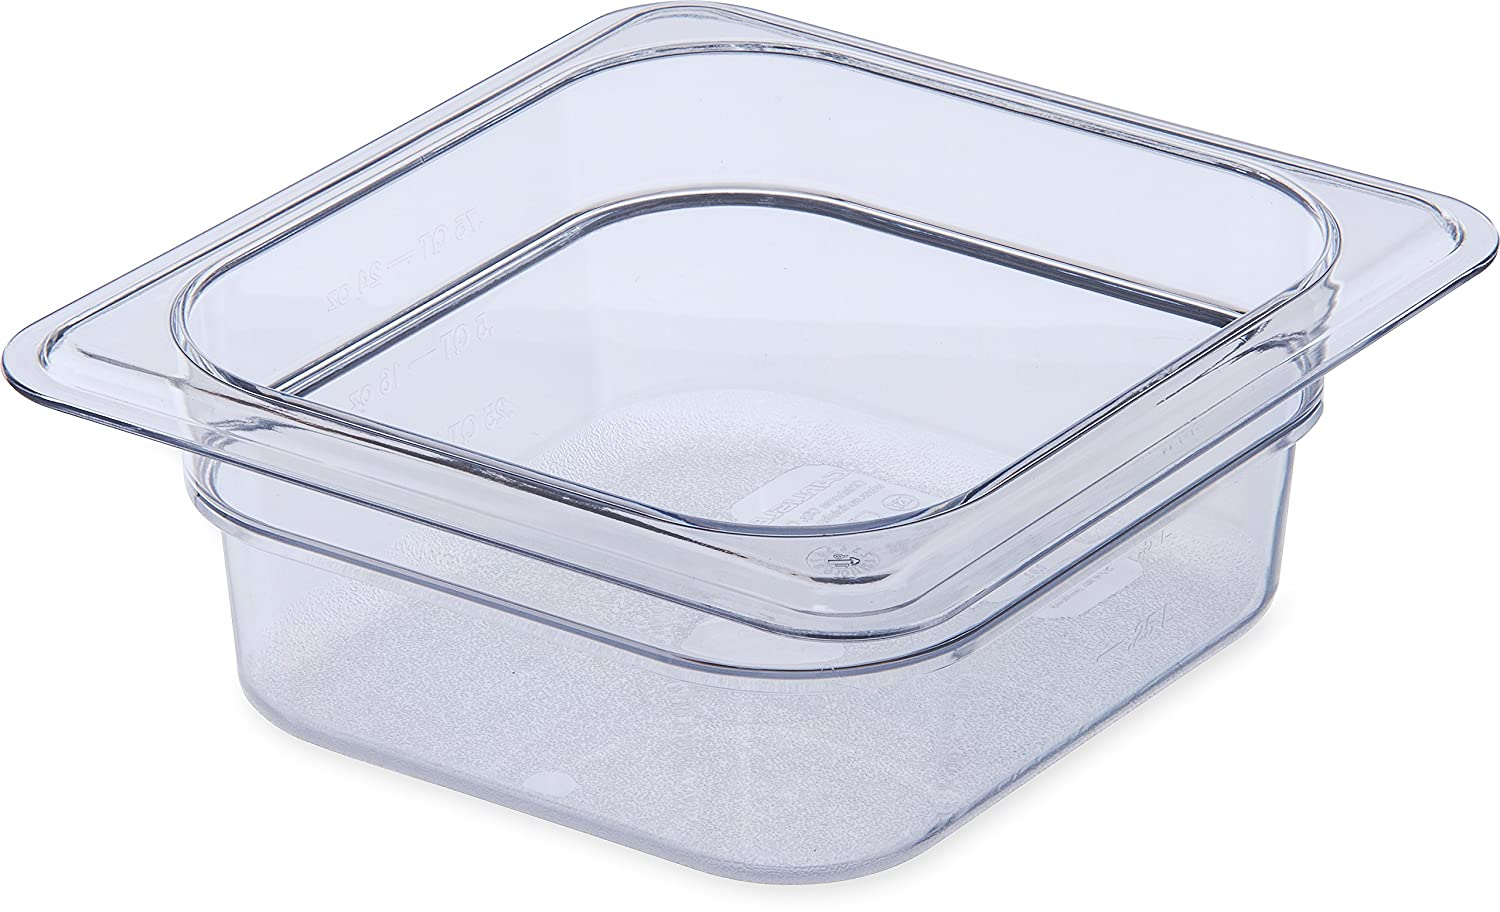 "Carlisle 3068307 StorPlus Sixth Size Food Pan, Polycarbonate, 2.5"" Deep, Clear"